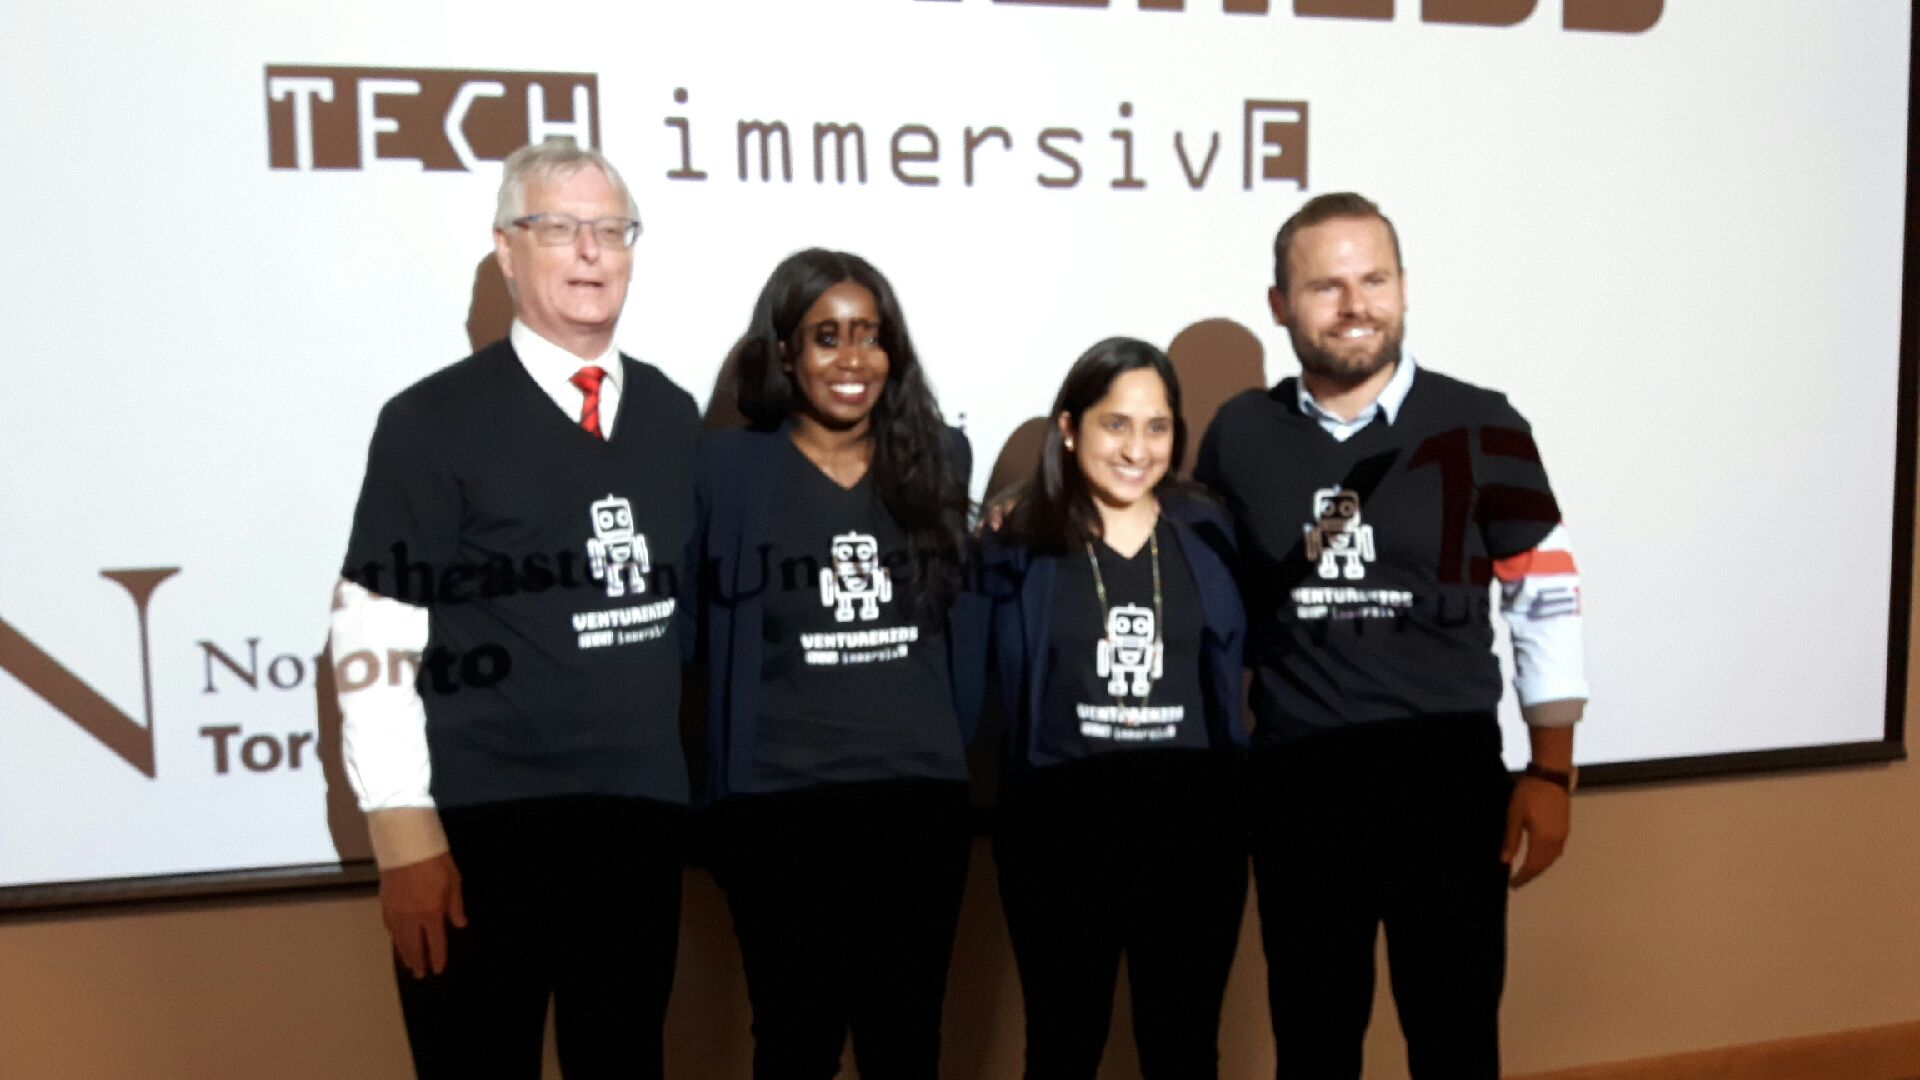 From left: Cobourg Mayor John Henderson, Northeastern University regional dean and chief executive officer Aliza Lakhani, tech entrepreneur and St. Mary Secondary School alumna Takara Small and Northumberland-Peterborough South MPP David Piccini